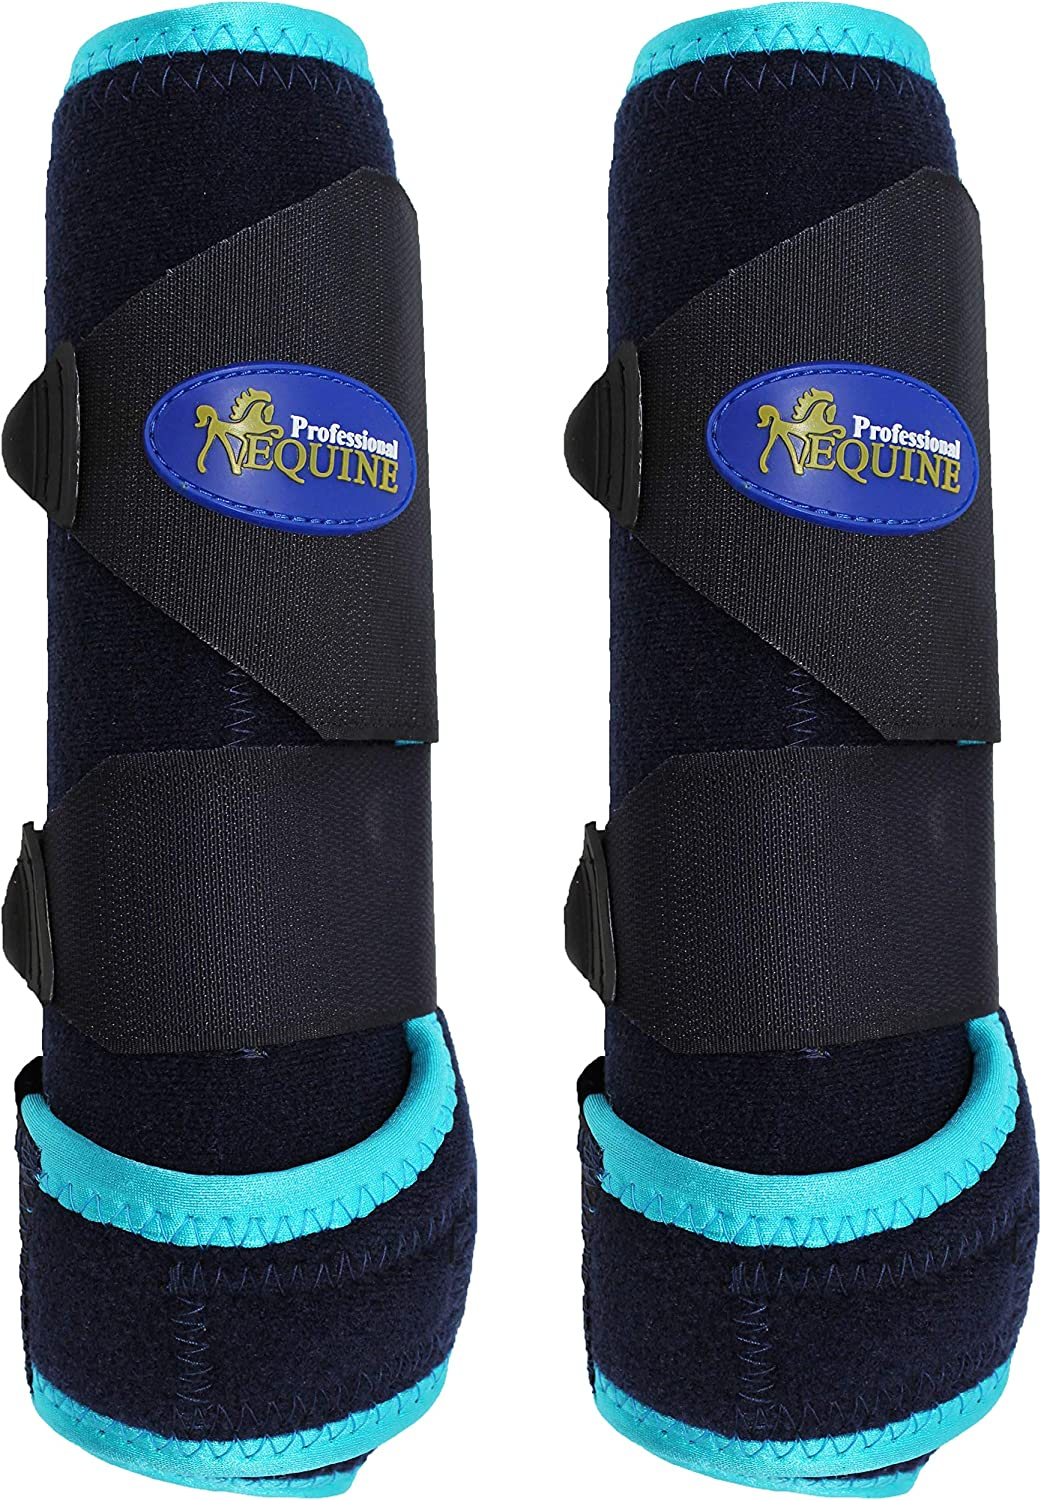 Horse Medium Professional Equine Sports Medicine Splint Boots 4128A